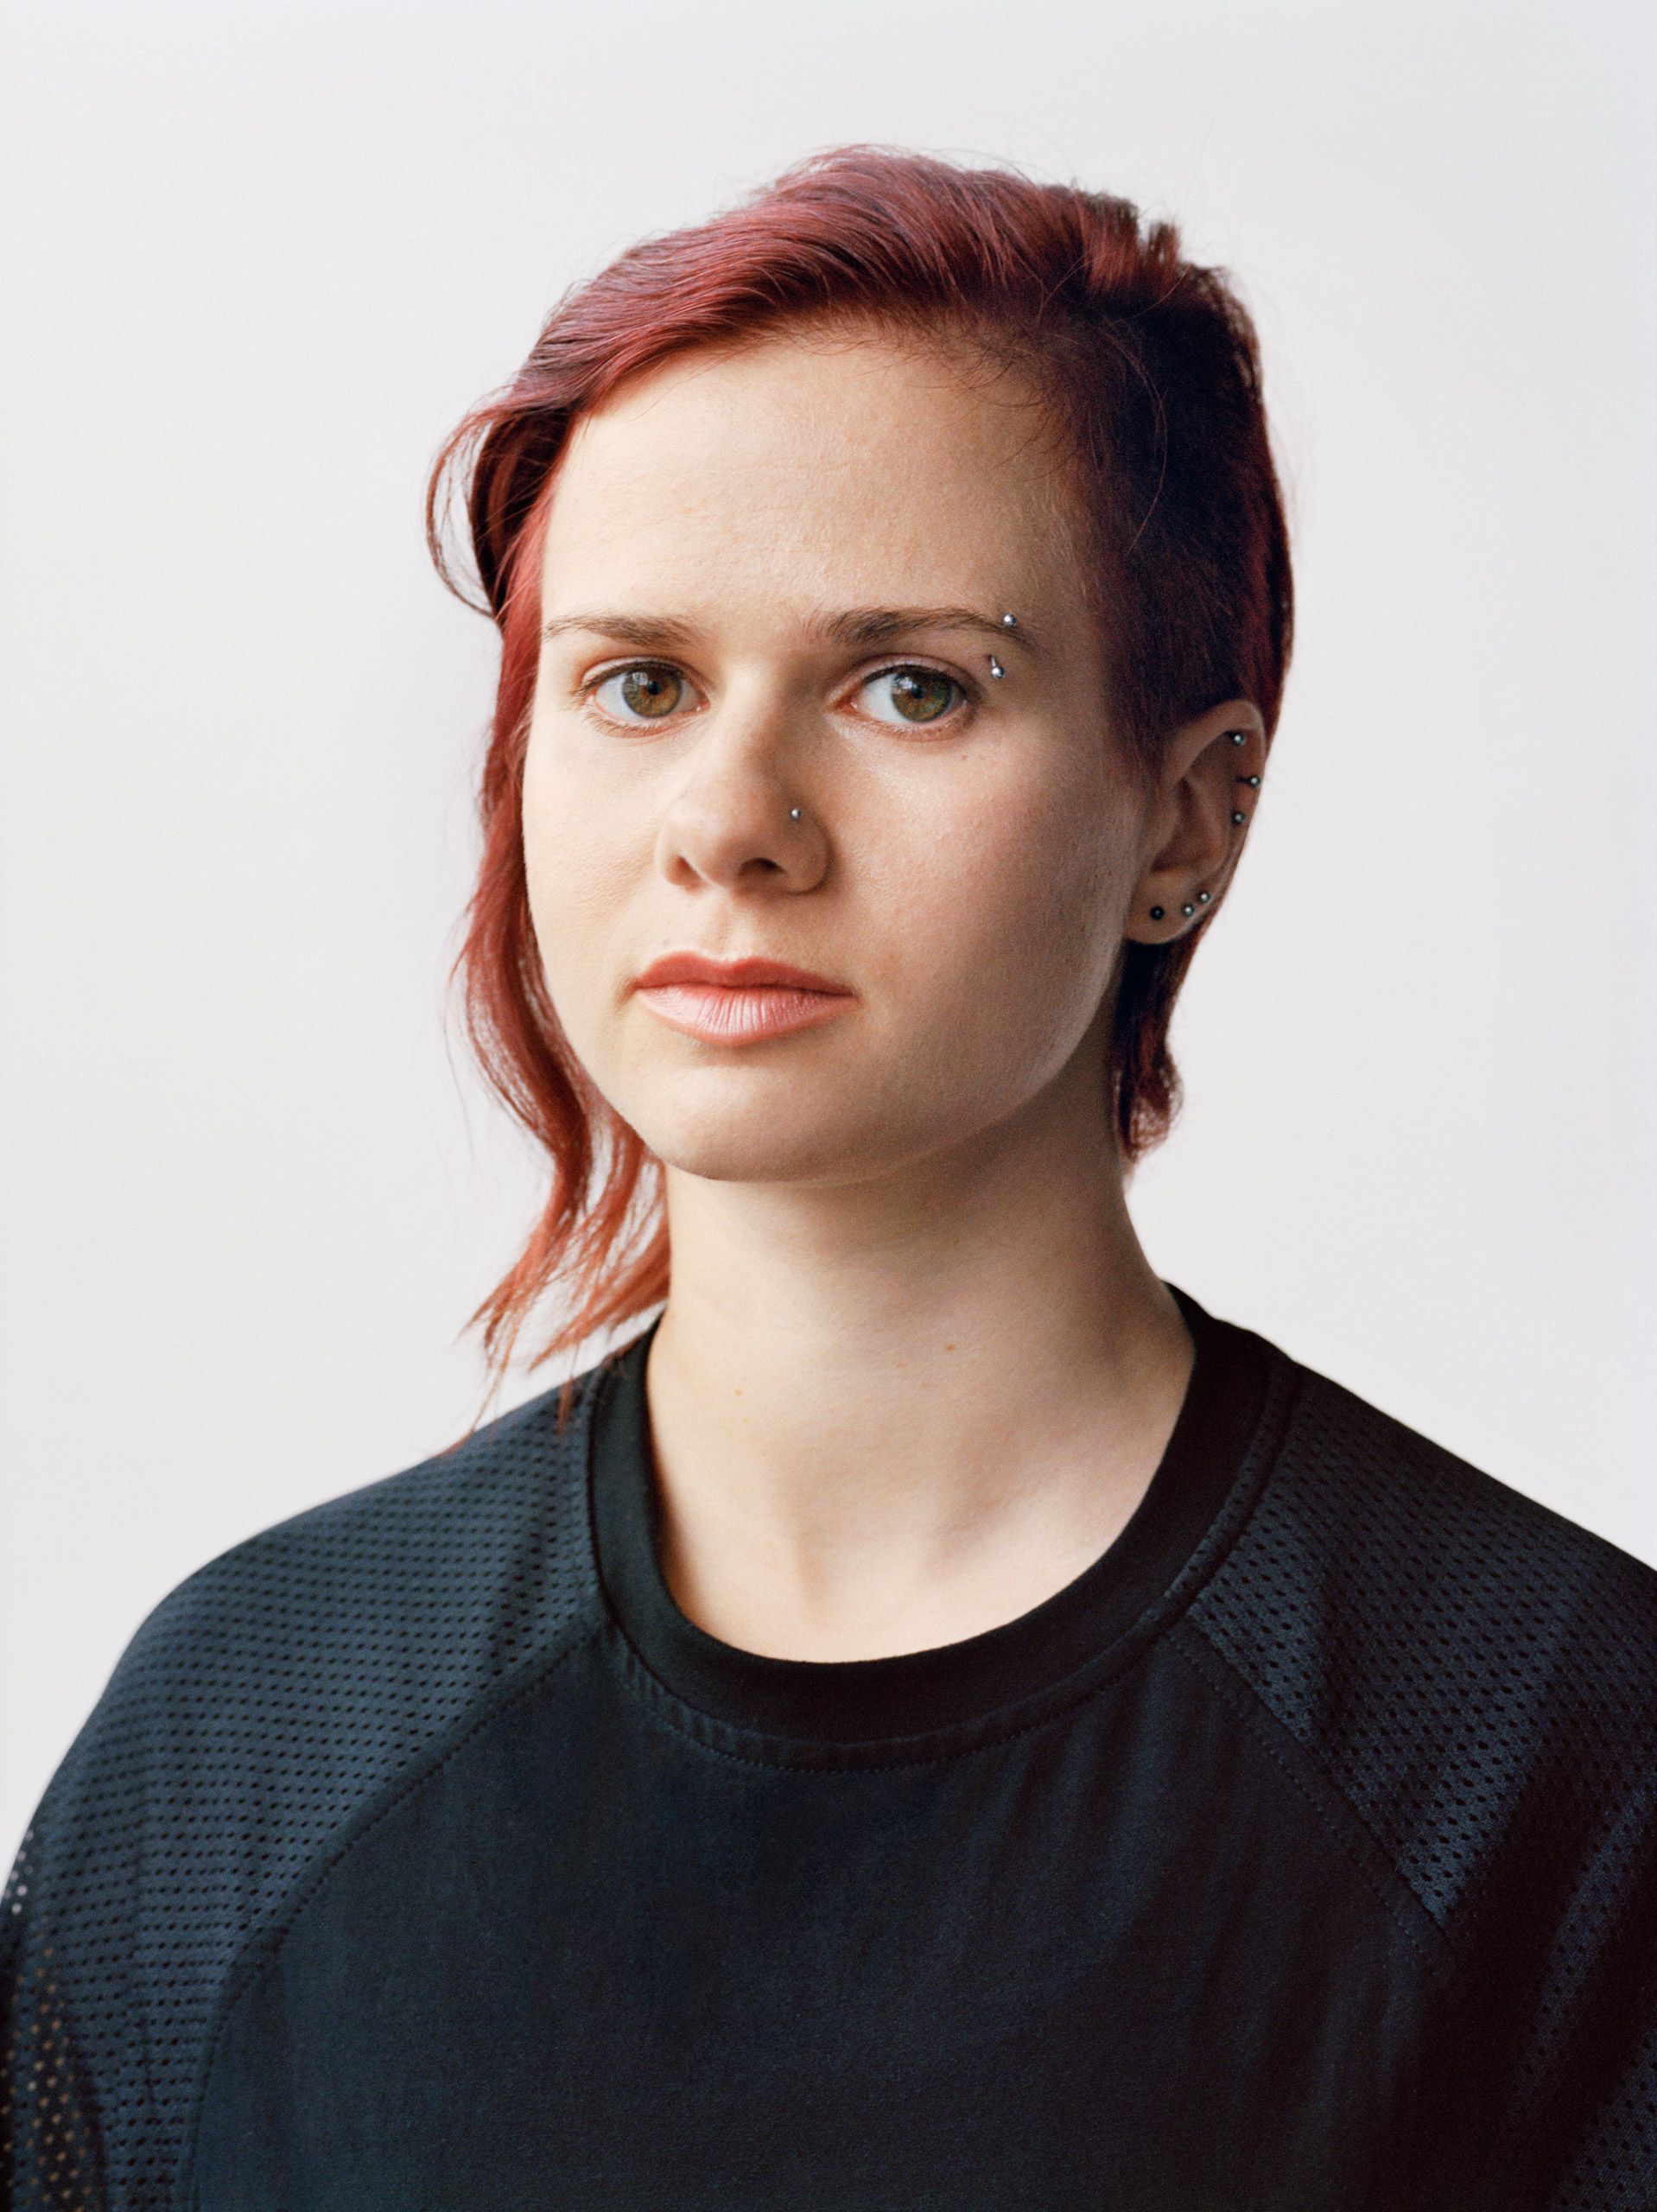 Marie McGwier identifies as queer and gender nonconforming